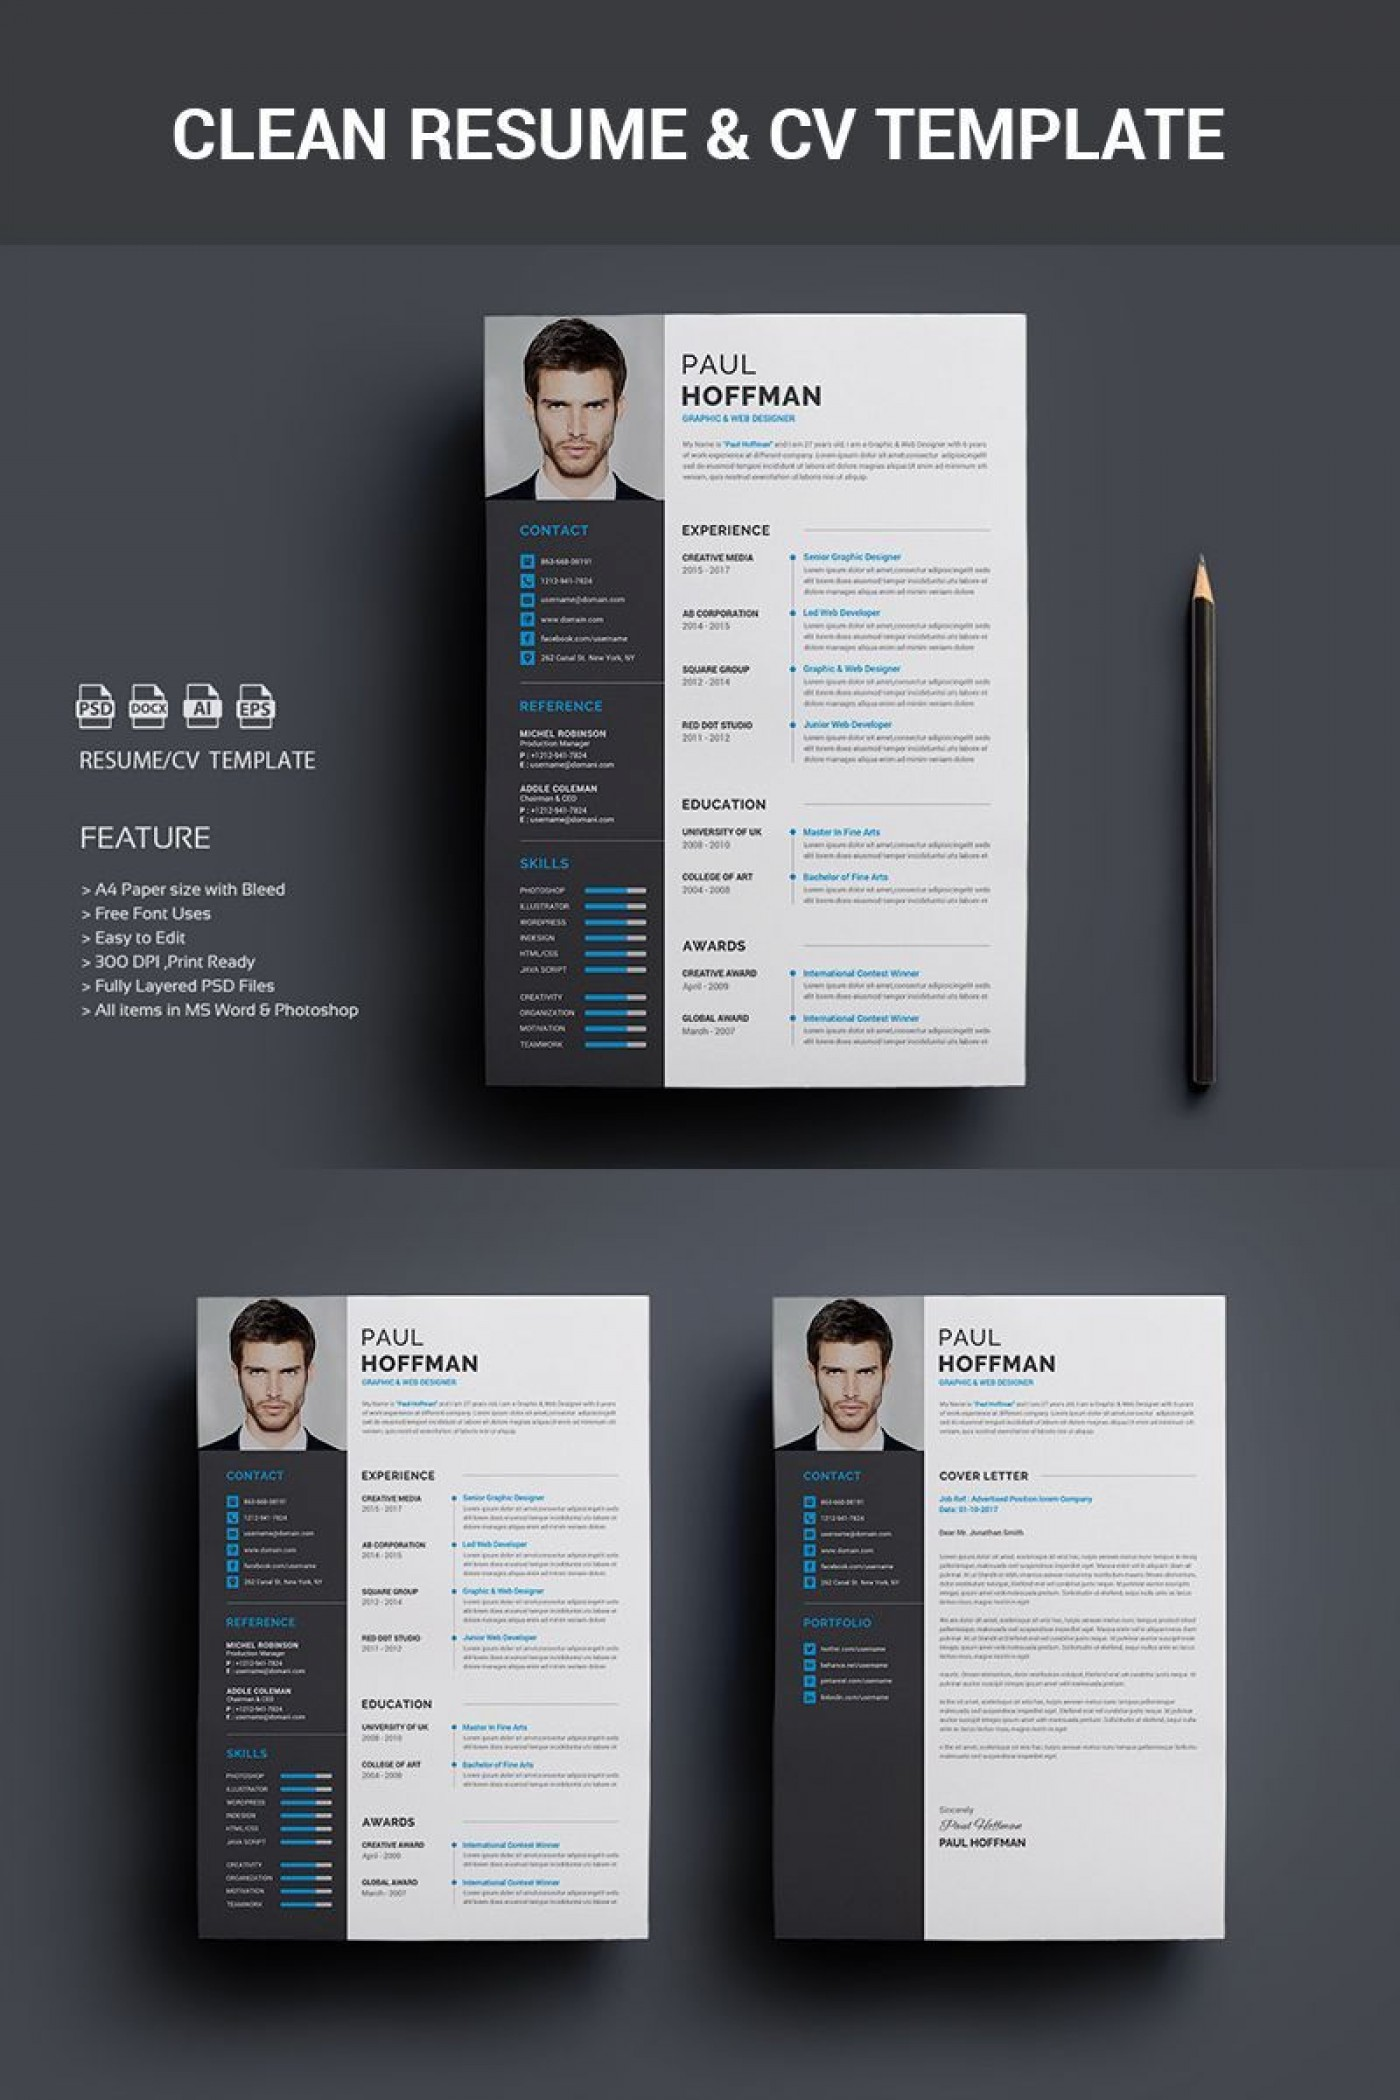 005 Archaicawful How To Create A Resume Template In Photoshop Image 1400